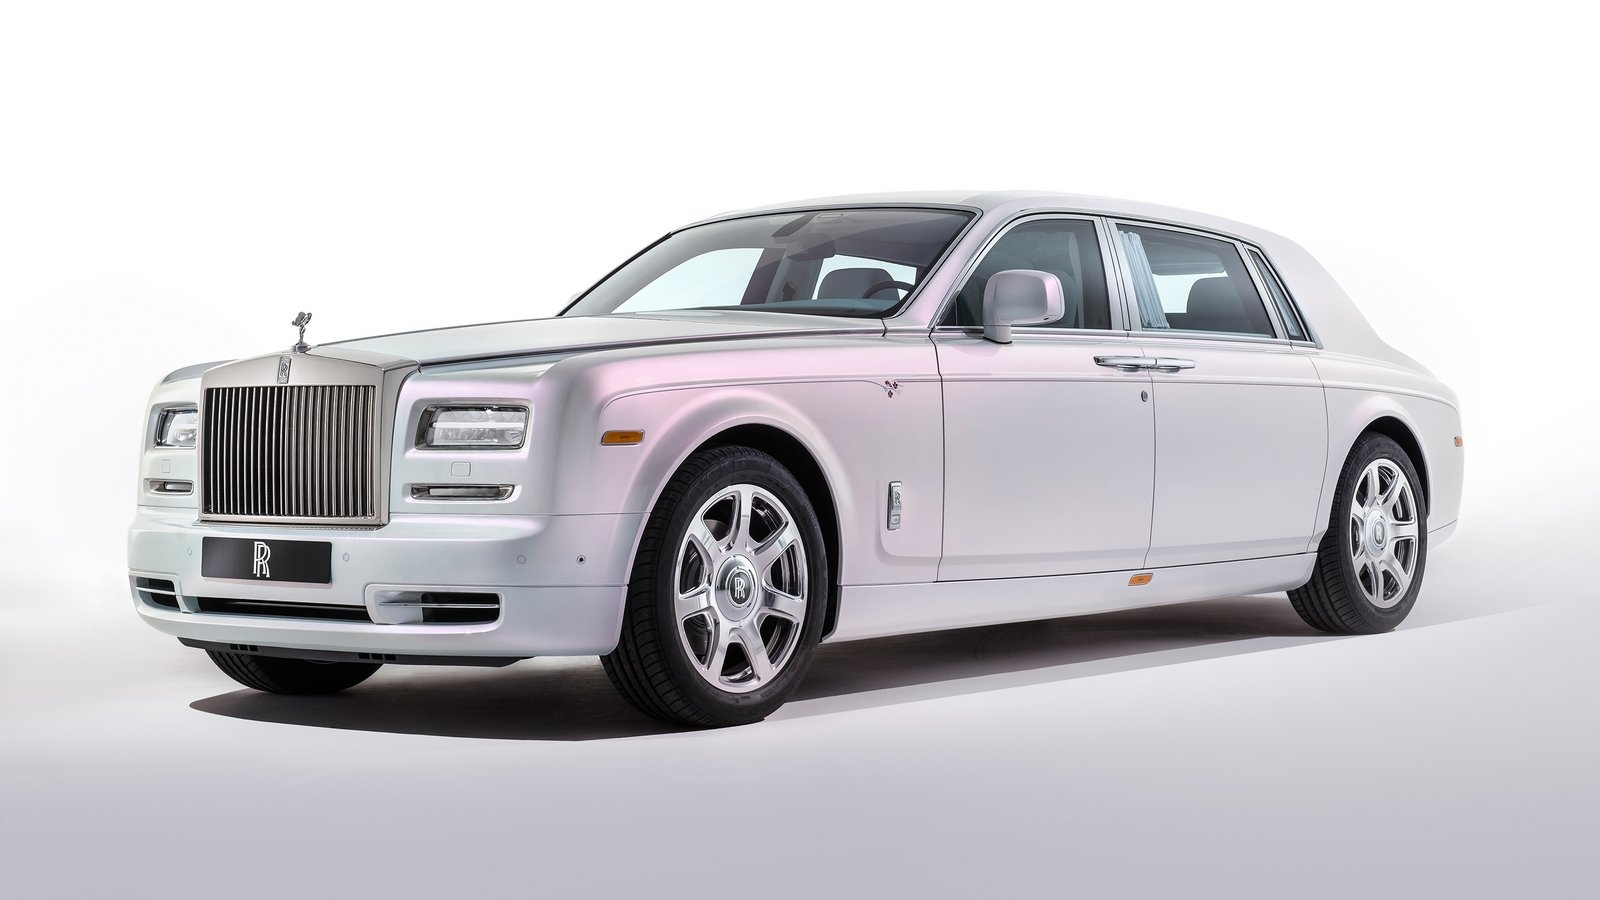 2015 rolls royce phantom serenity picture 619736 car review top speed. Black Bedroom Furniture Sets. Home Design Ideas